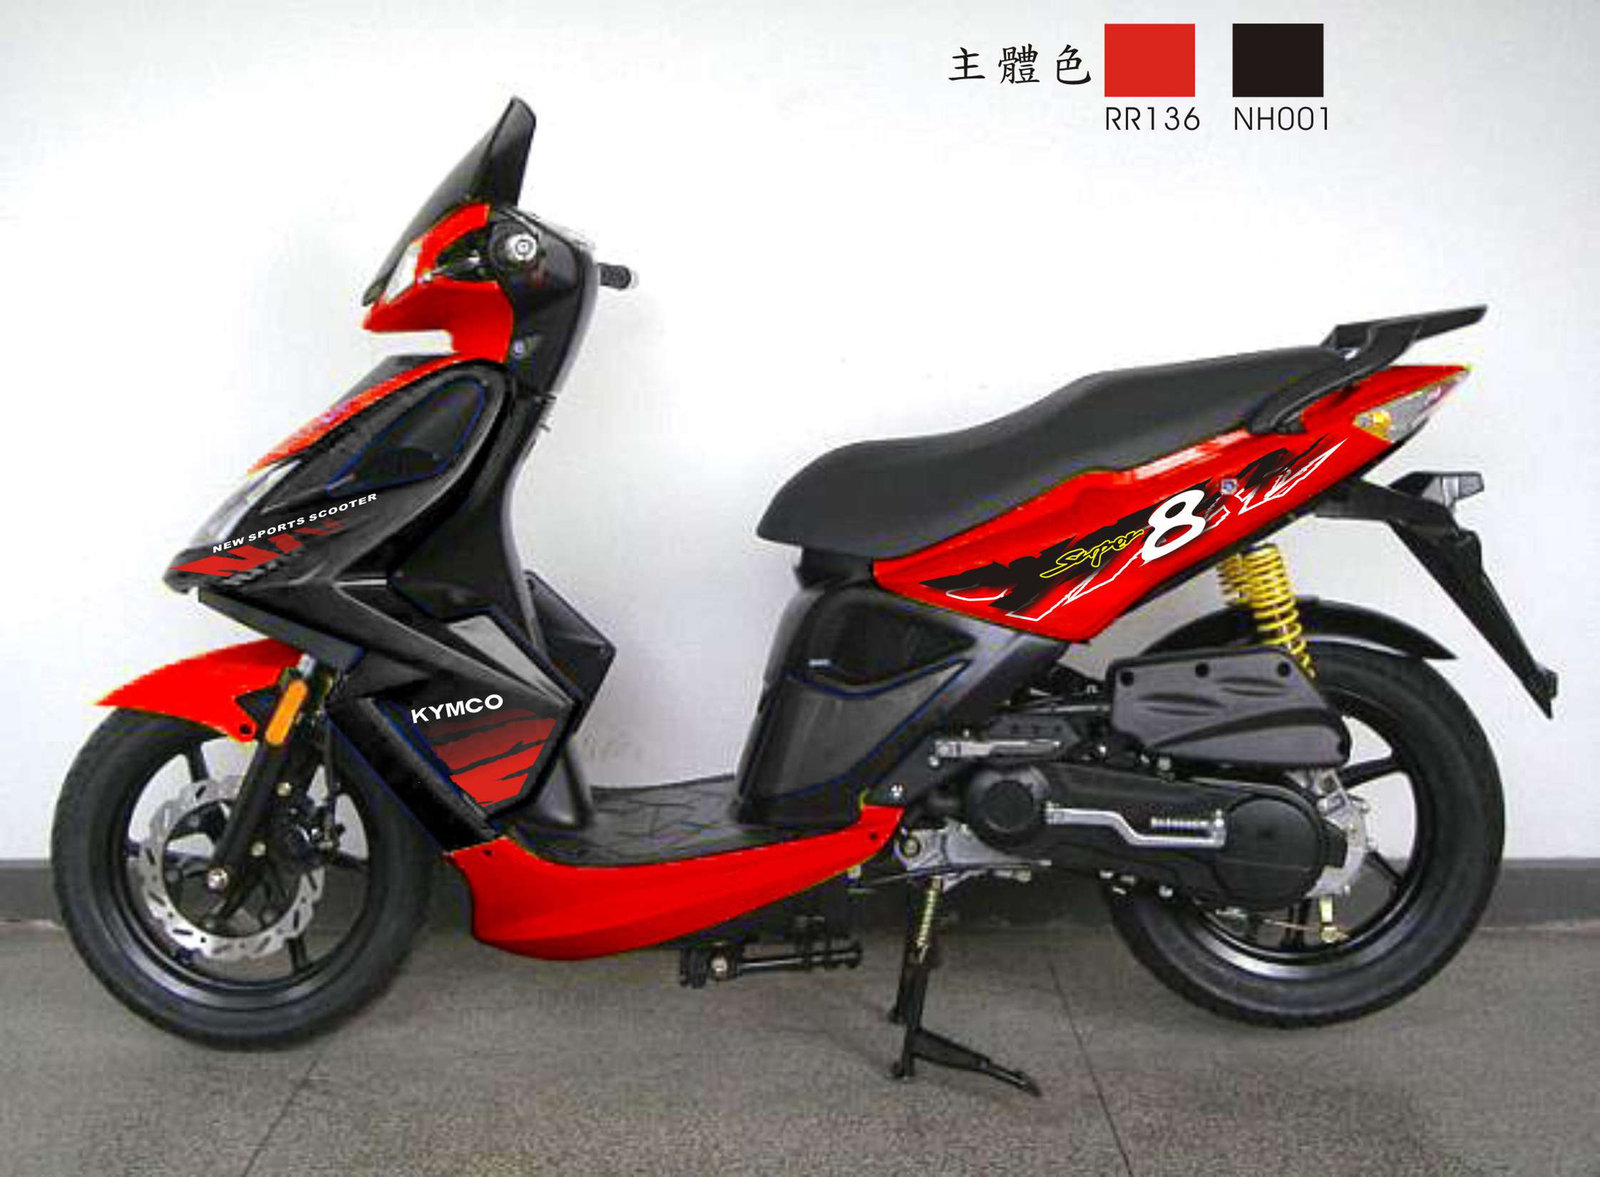 Kymco Super 8 50 2T images #101275